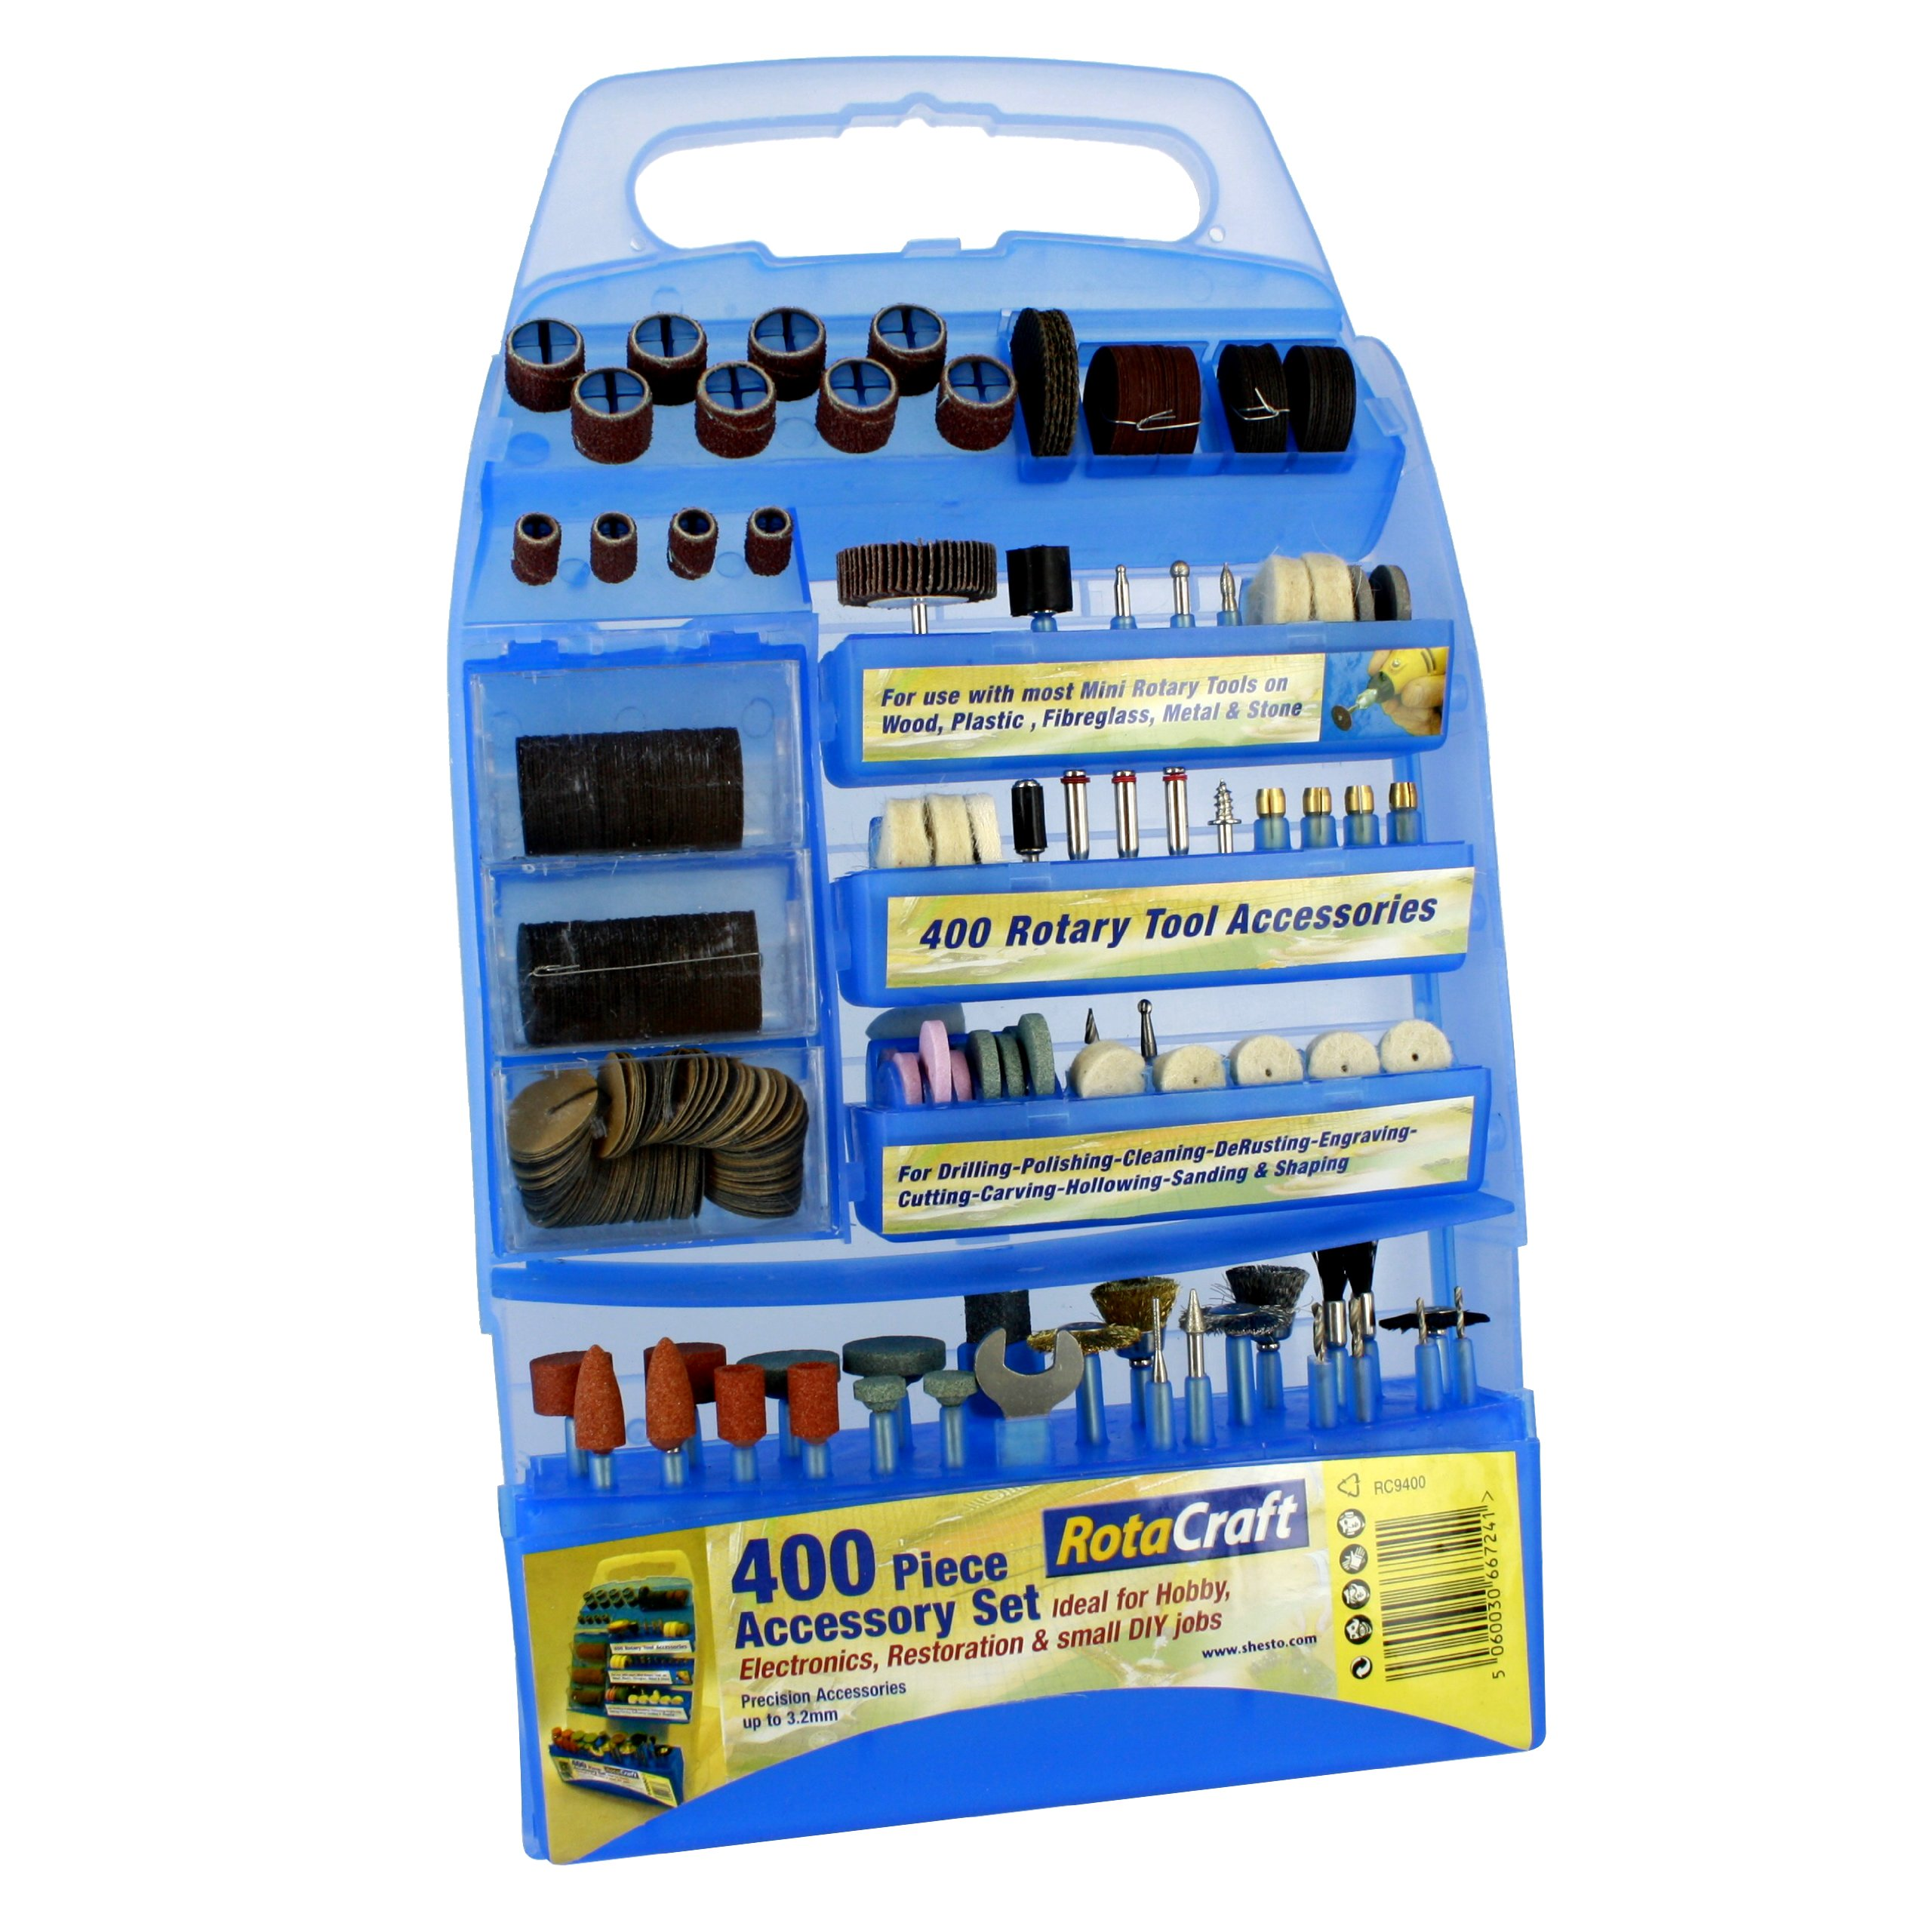 Yellow Rotacraft Slim-line Engraving and Rotary Tool Kit